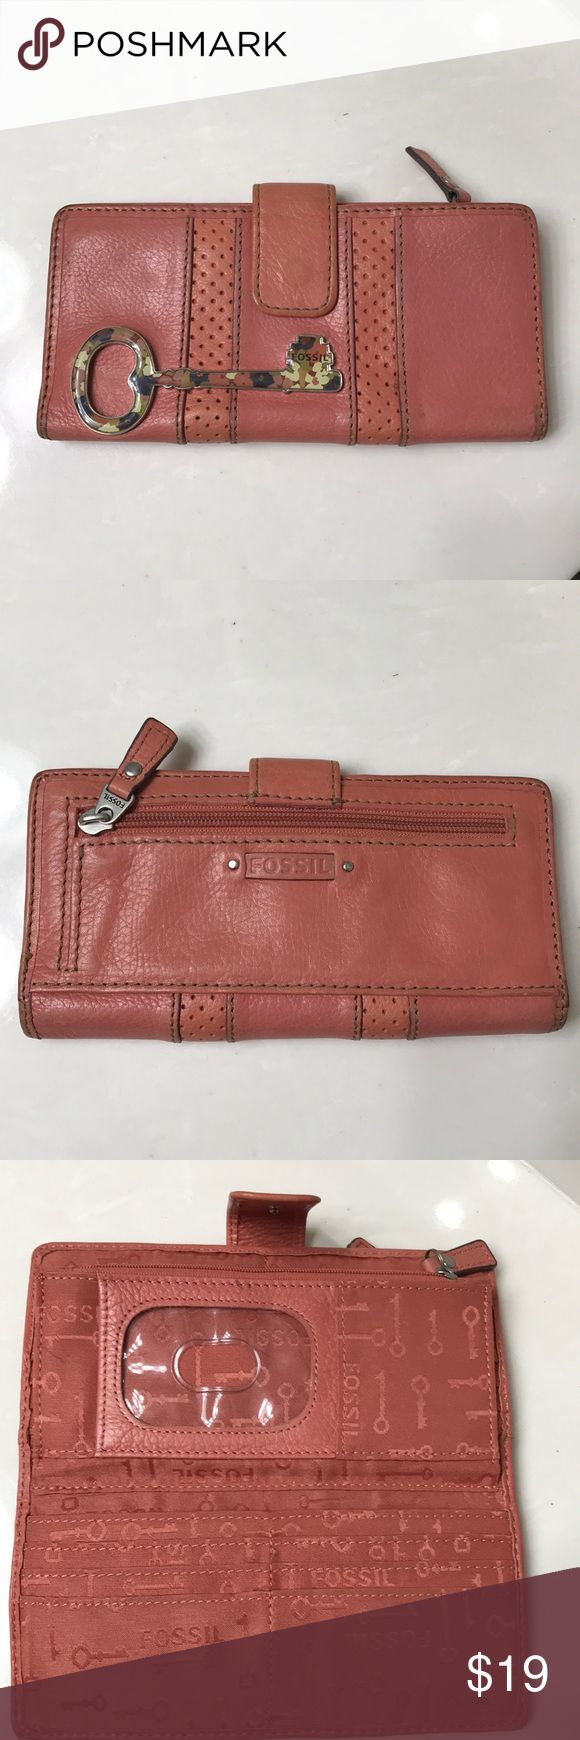 Fossil wallet Fossil Wallet perfect for Spring! Gently used. Fossil Accessories Key & Card Holders